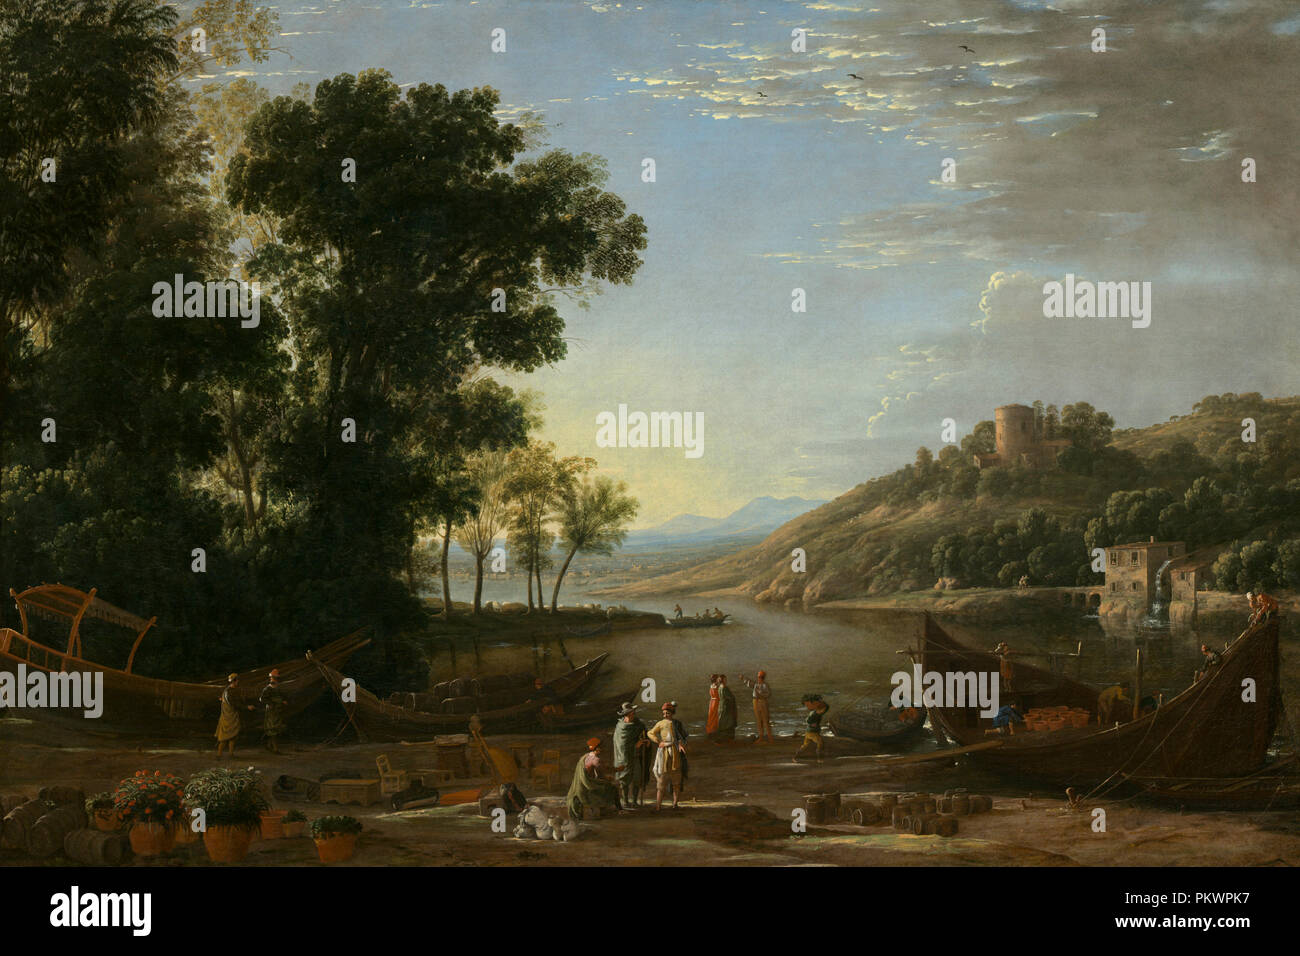 Landscape with Merchants. Dated: c. 1629. Dimensions: overall: 97.2 x 143.6 cm (38 1/4 x 56 9/16 in.). Medium: oil on canvas. Museum: National Gallery of Art, Washington DC. Author: Claude Lorrain. - Stock Image